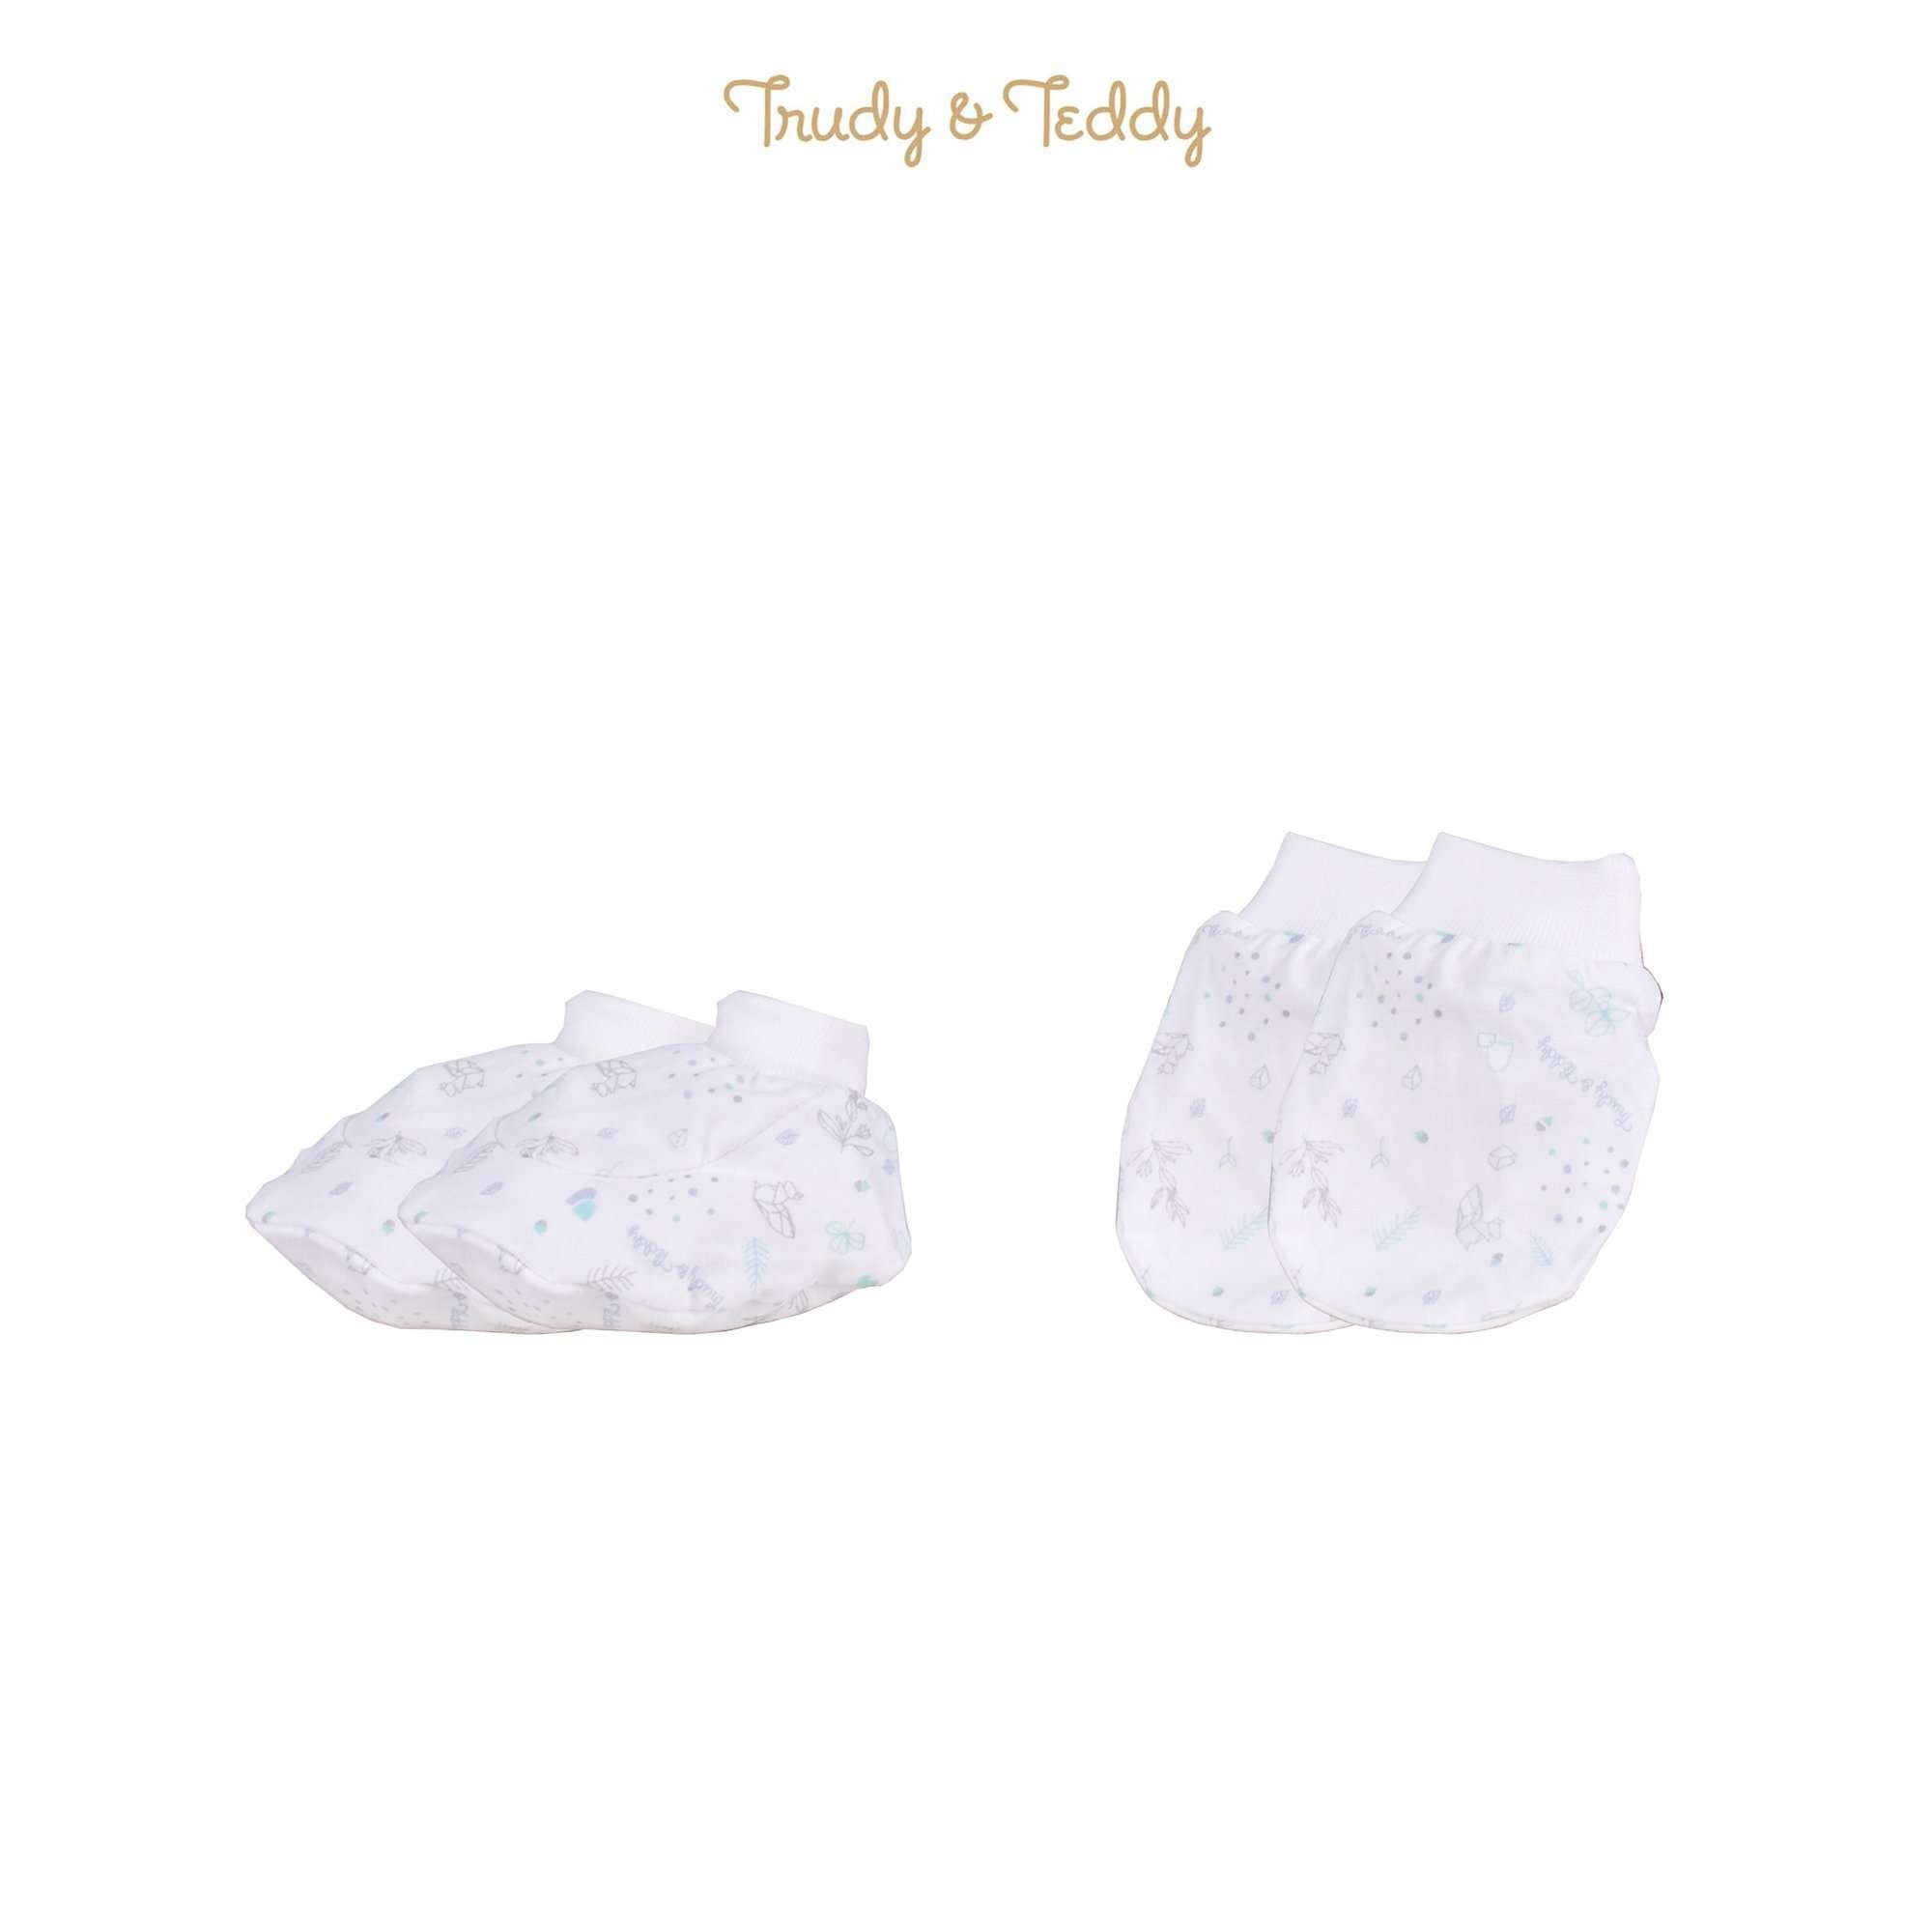 Trudy & Teddy Baby Girl Mitten & Booties 820030-701 : Buy Trudy & Teddy online at CMG.MY